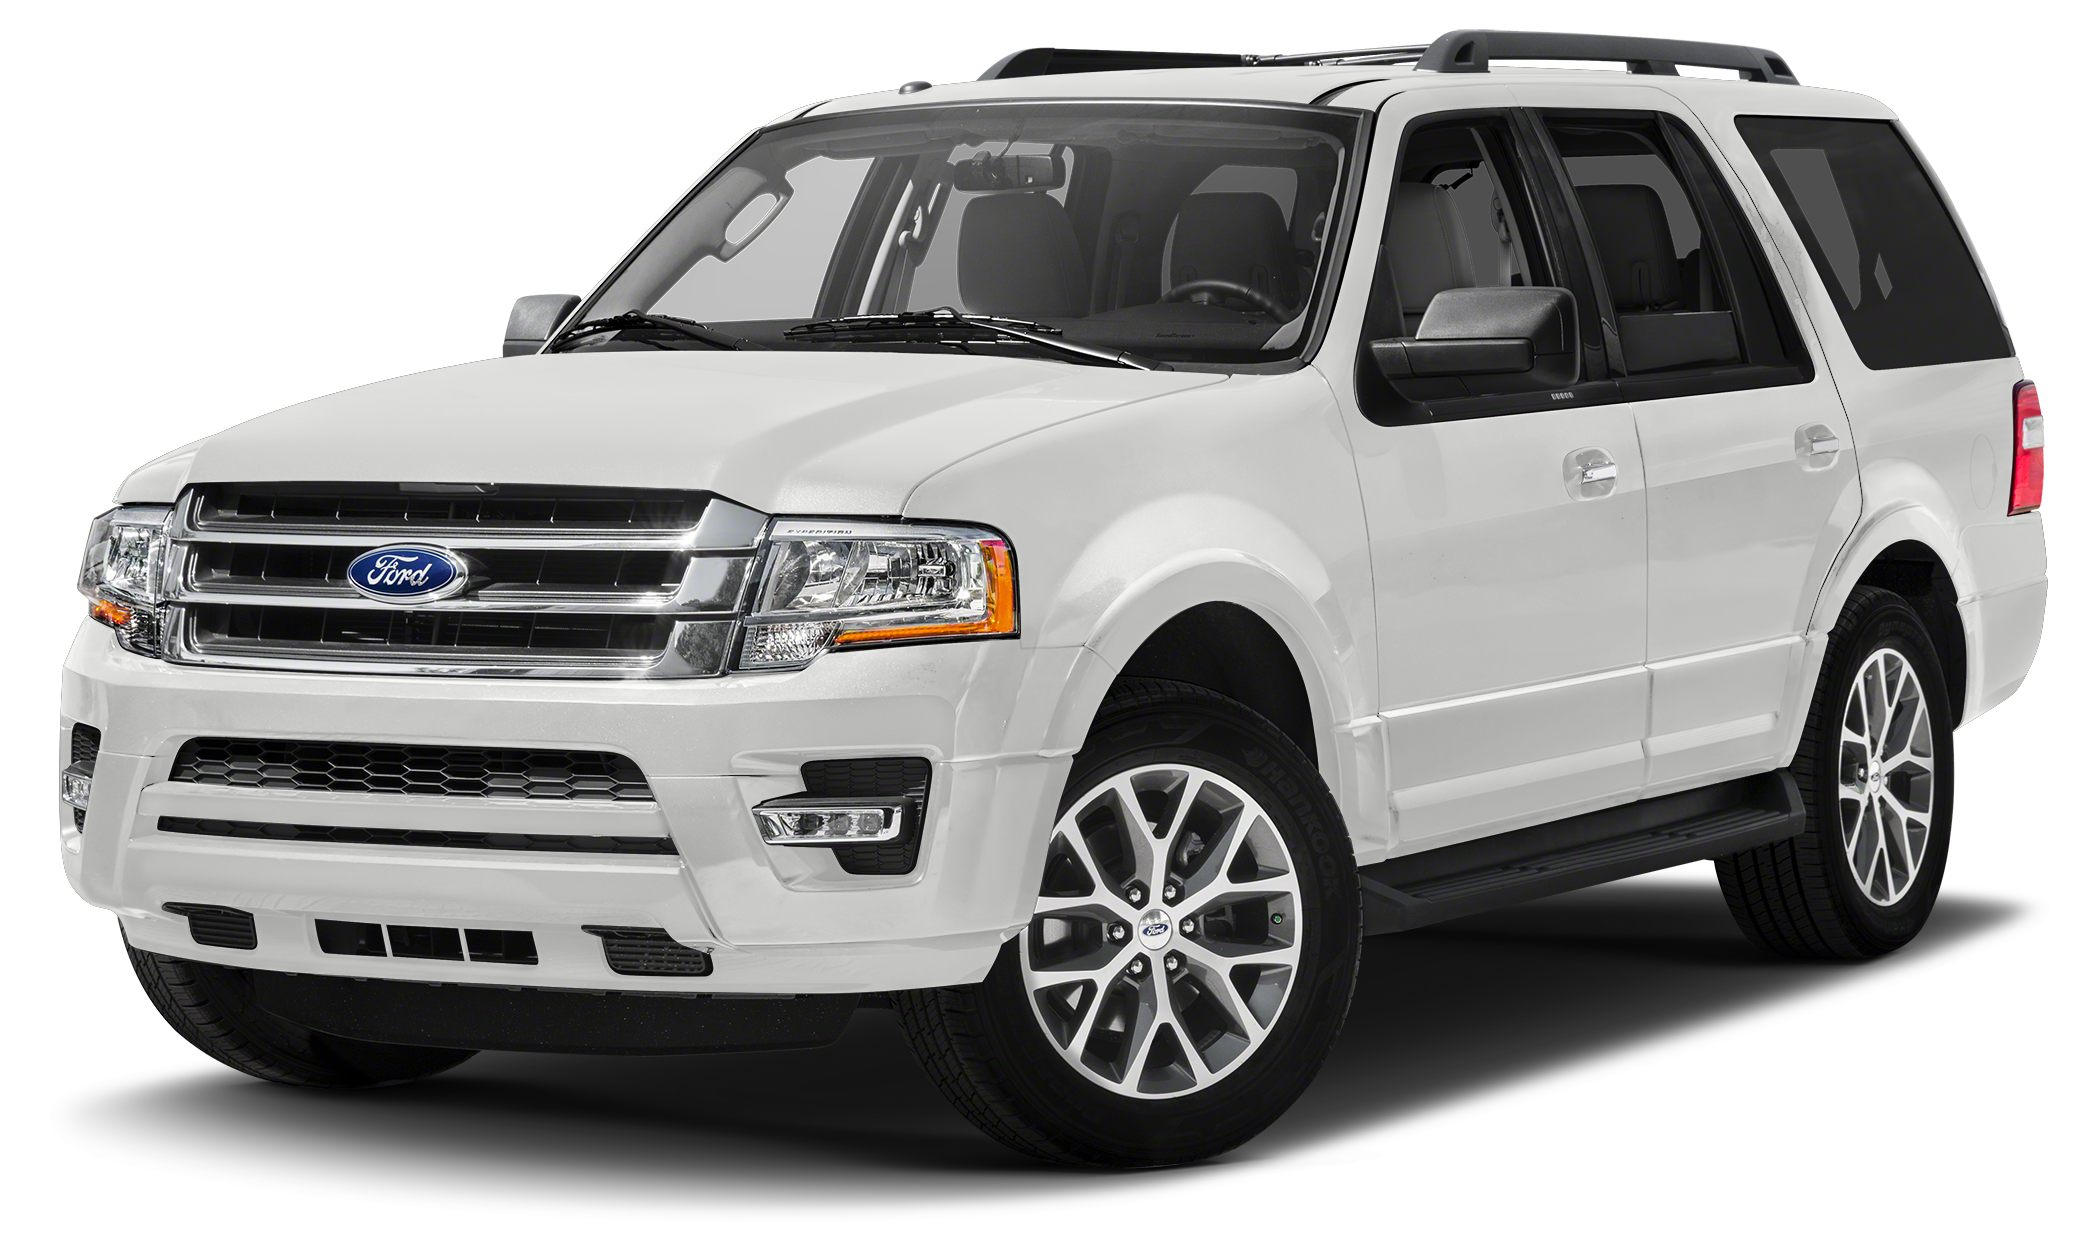 2015 Ford Expedition Platinum Redesigned for 2015 welcome in the all new Ford Expedition A new ag